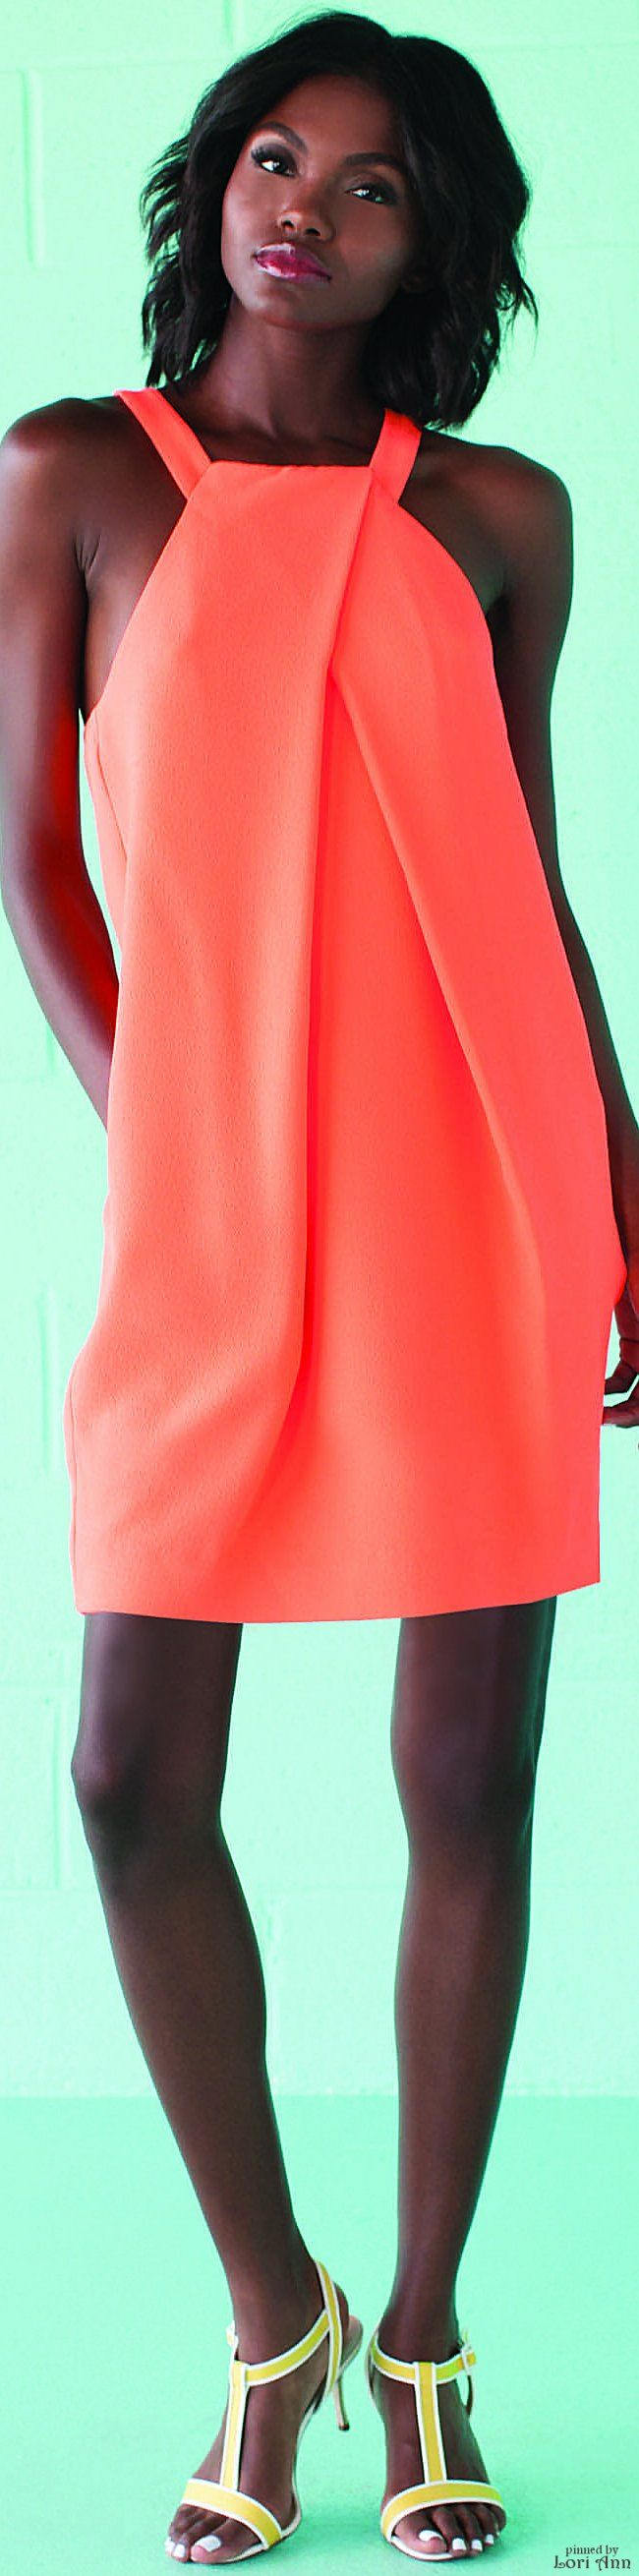 Trina Turk Spring 2016 RTW coral summer dress women fashion outfit clothing style apparel @roressclothes closet ideas